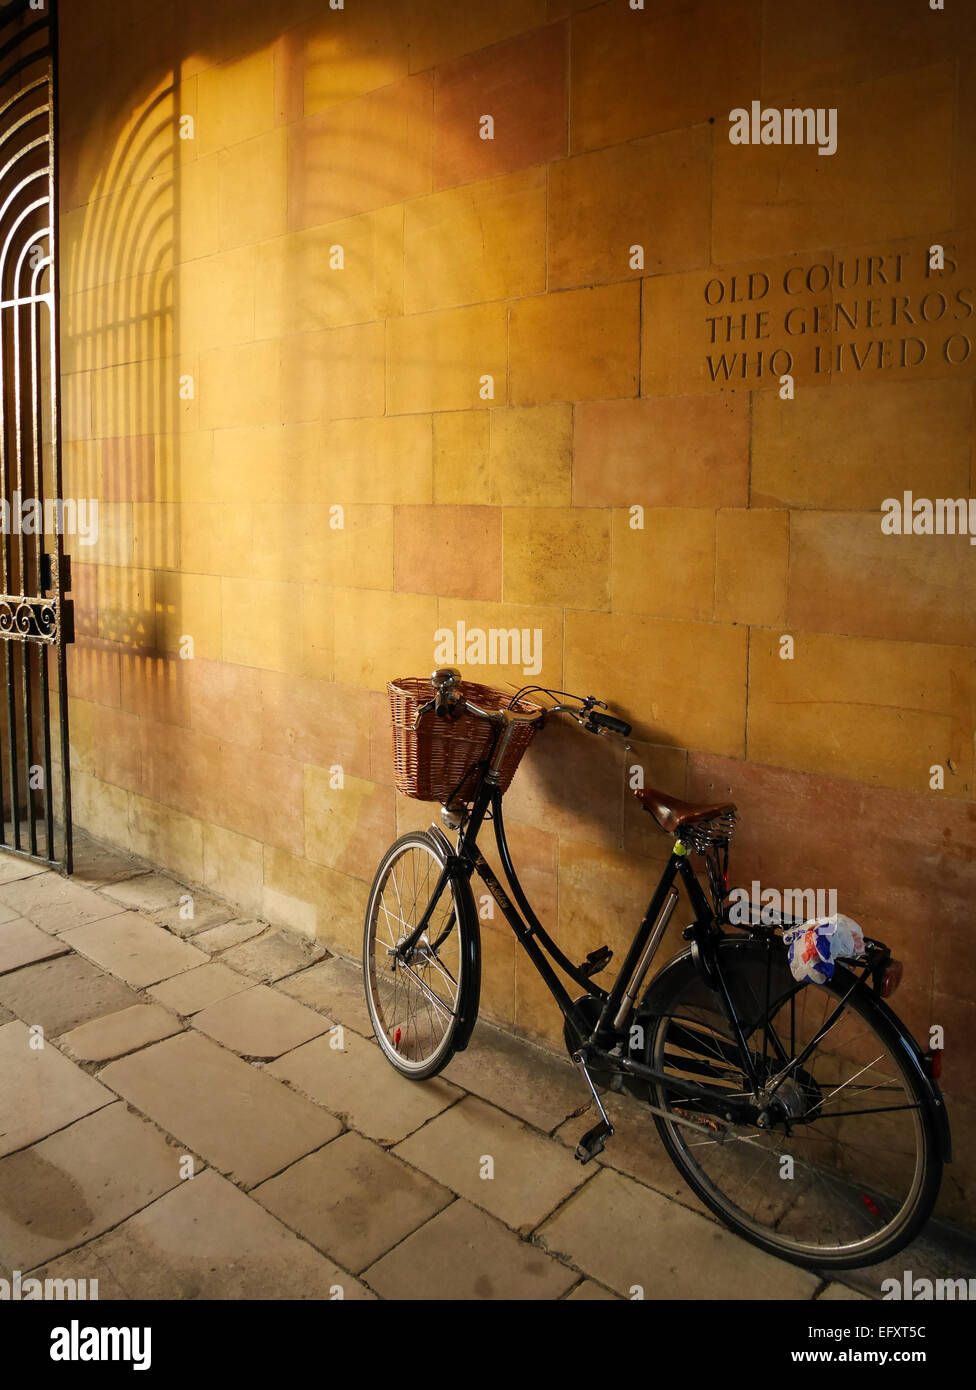 Bike leaning against a wall, University of Cambridge - Stock Image